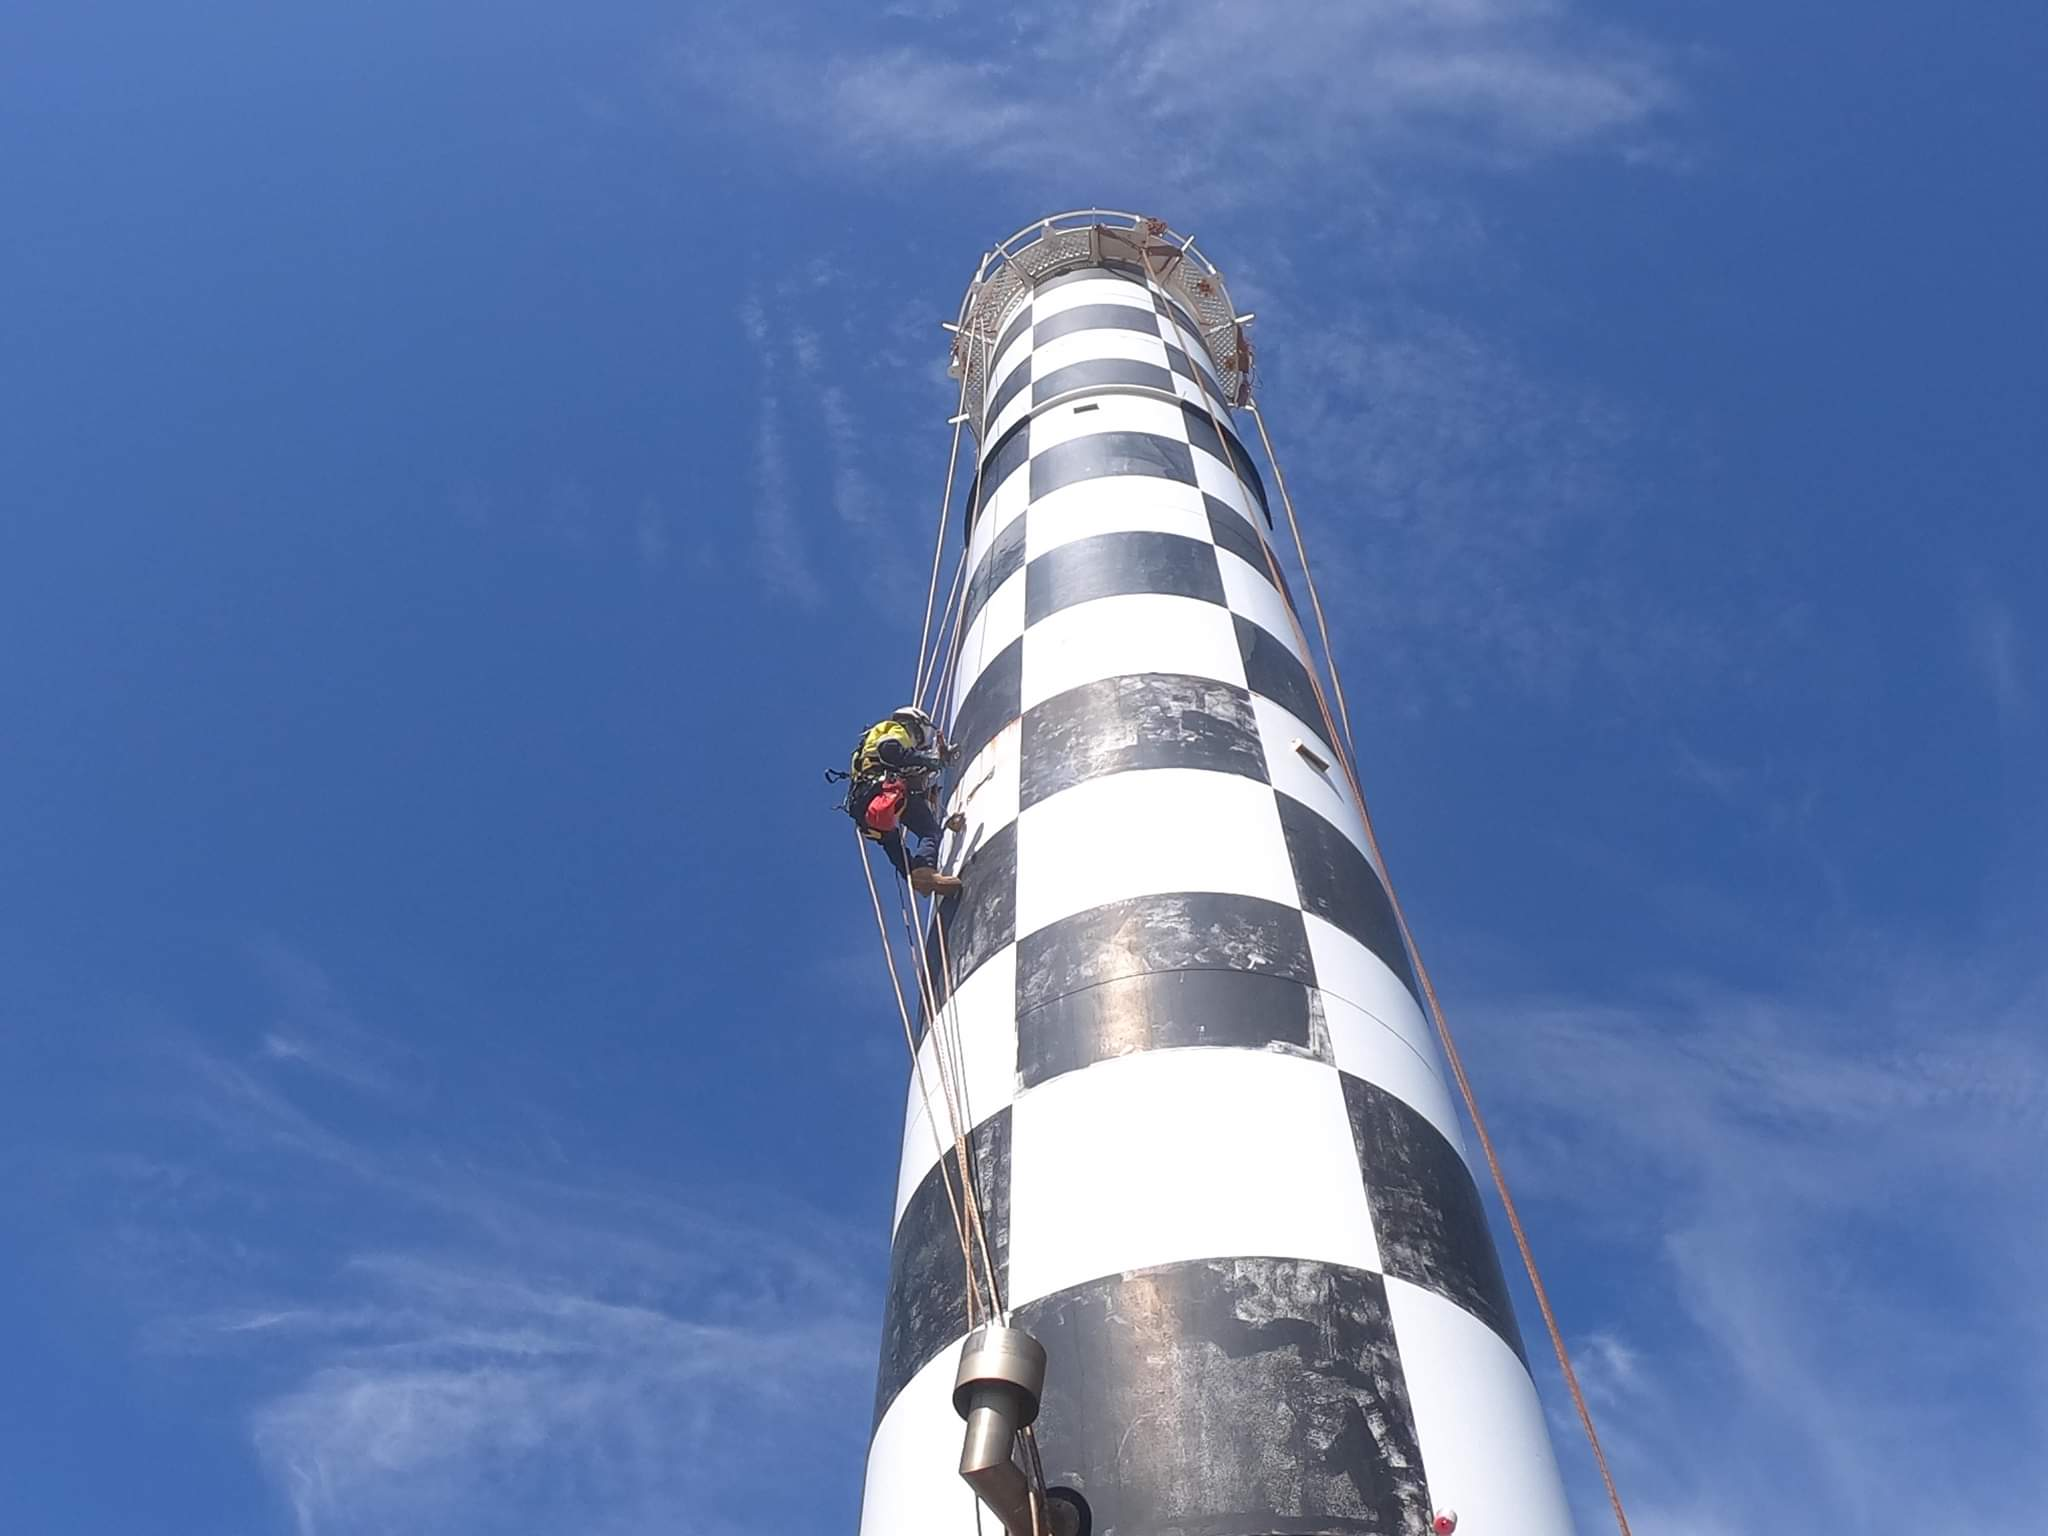 Work being completed on the Bunbury Lighthouse